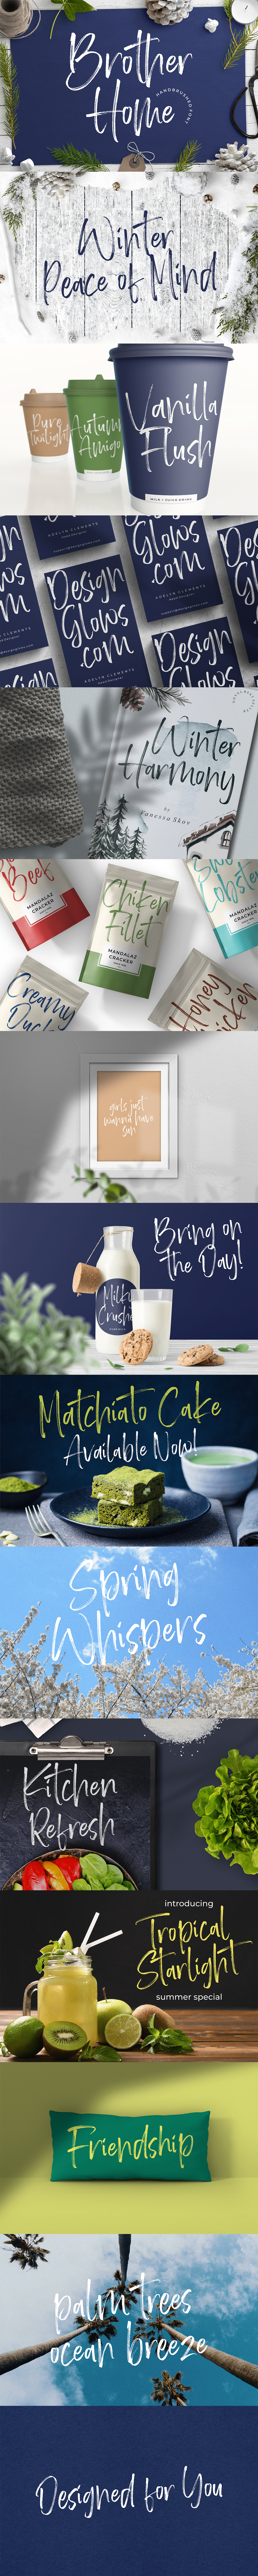 Free Brother Home Brush Font is a charming handwritten font that will make your designs more dashing